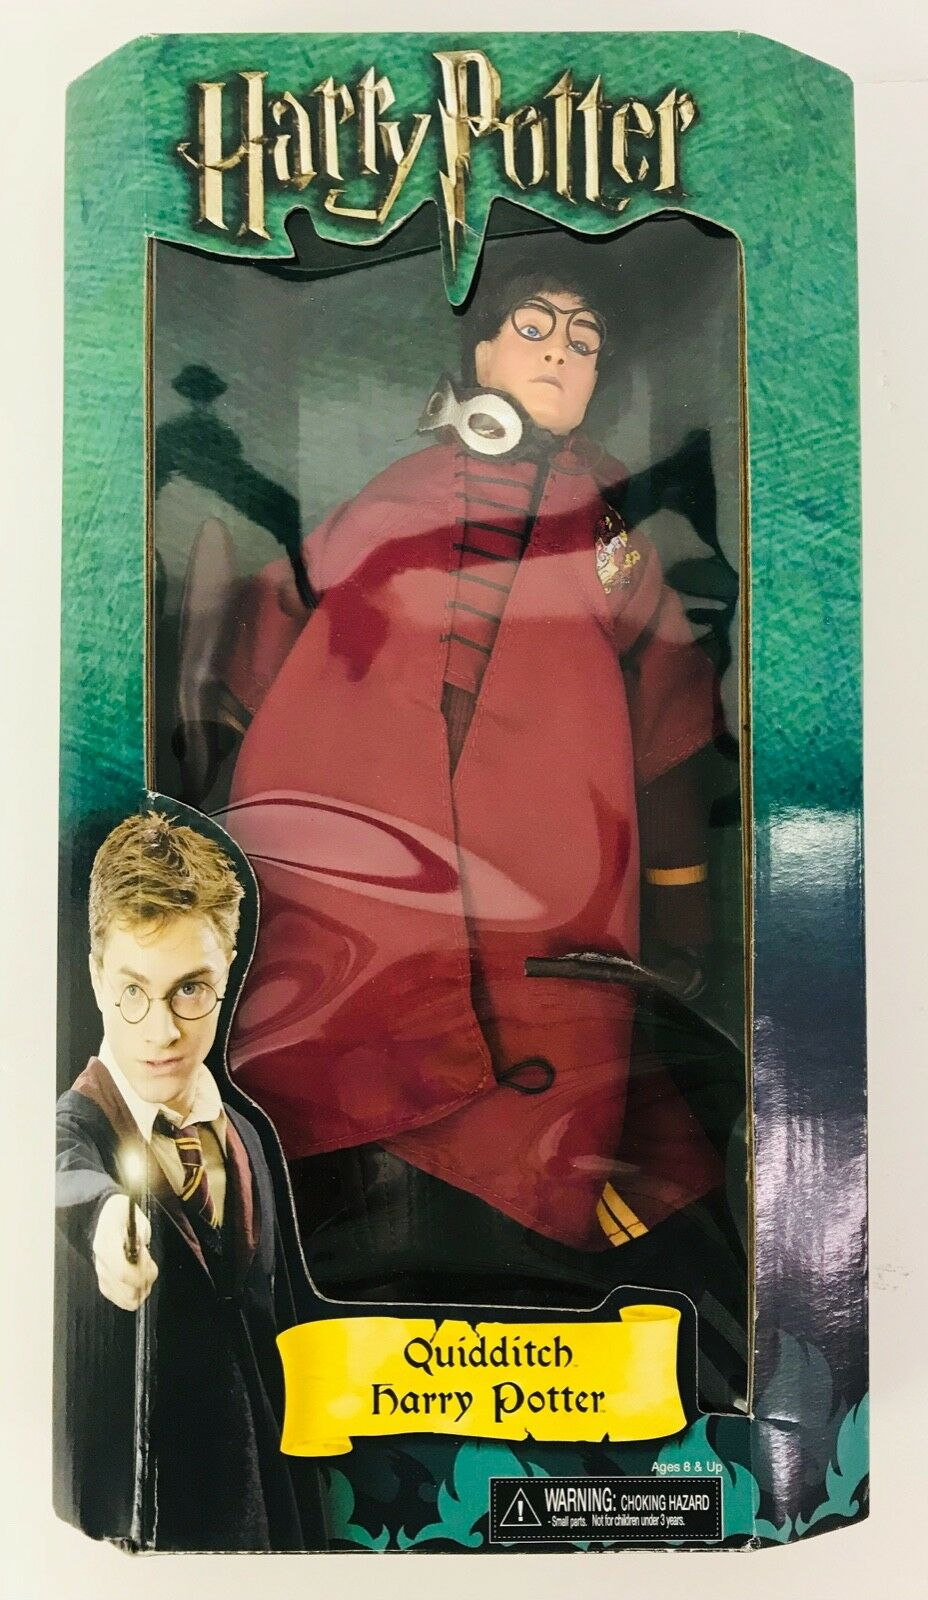 Harry Potter Limited Edition Quidditch Harry Potter Figure Numbered 2700